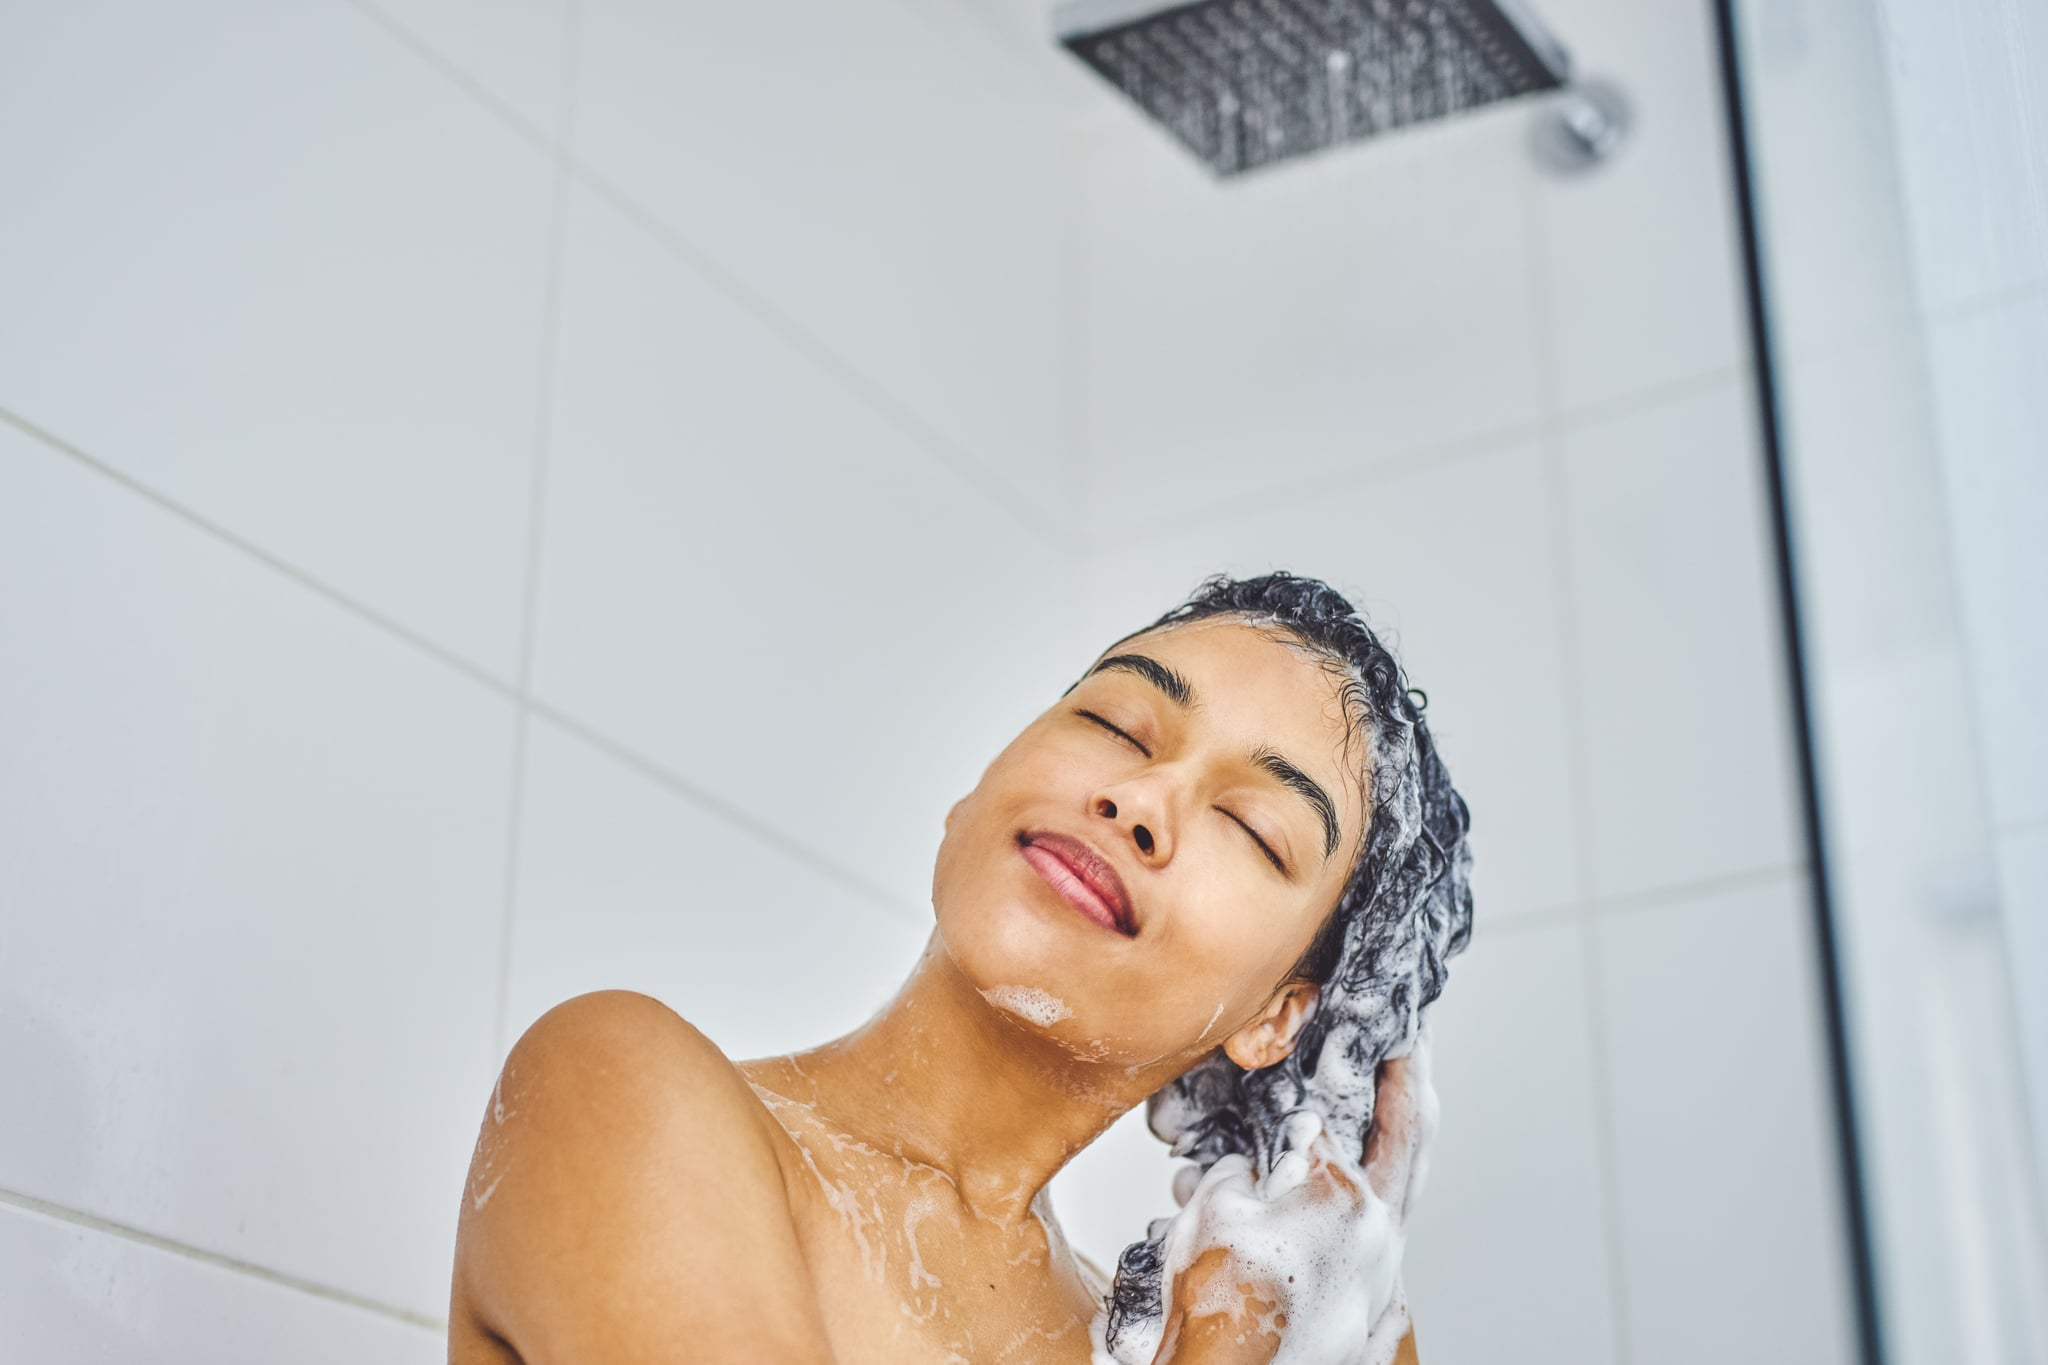 Shot of an attractive young woman washing her hair with shampoo in the shower at home